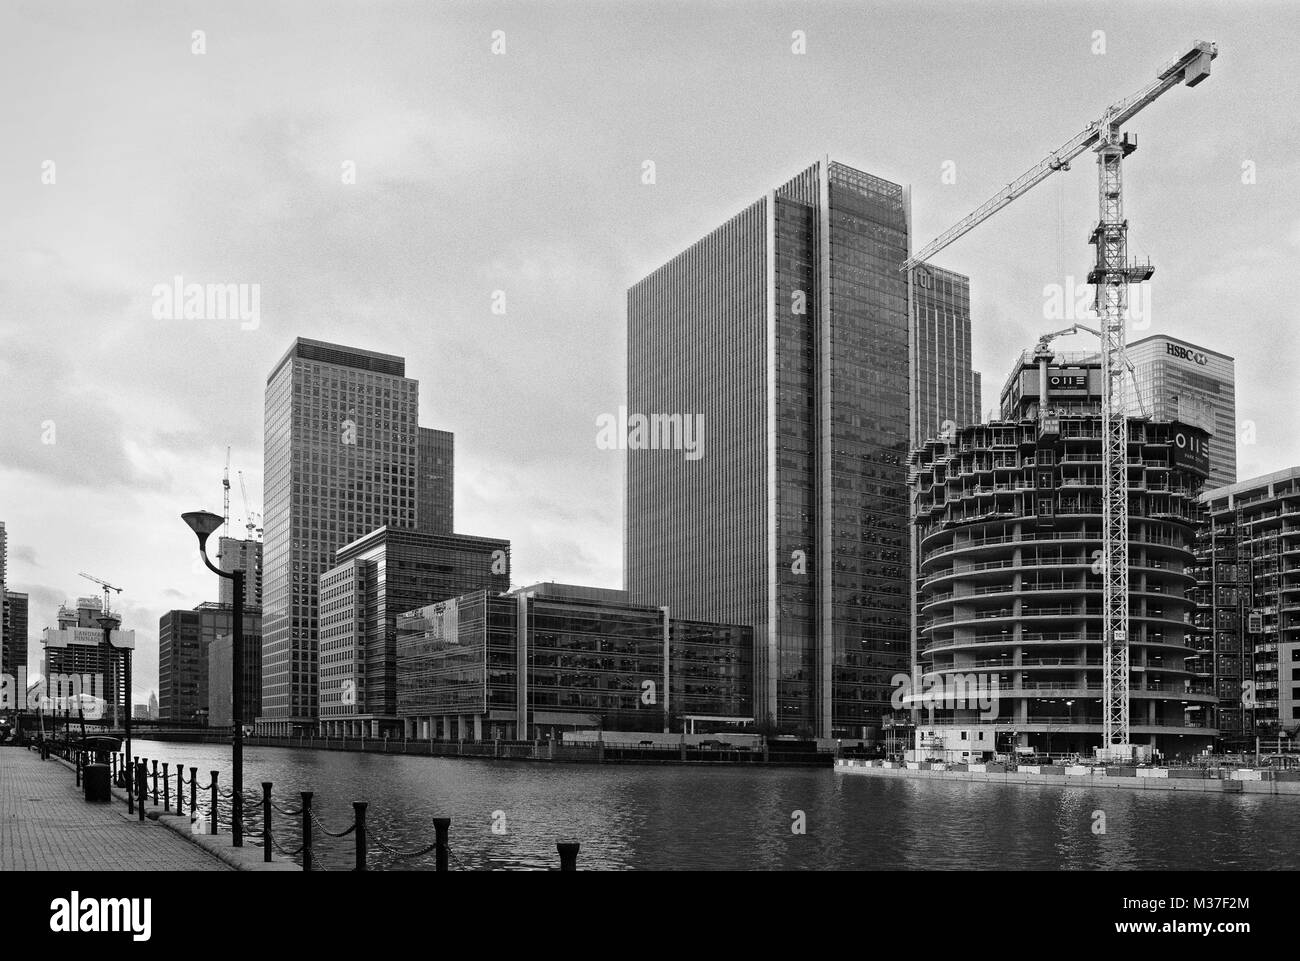 South Dock, Canary Wharf, London UK, with buildings under construction - Stock Image